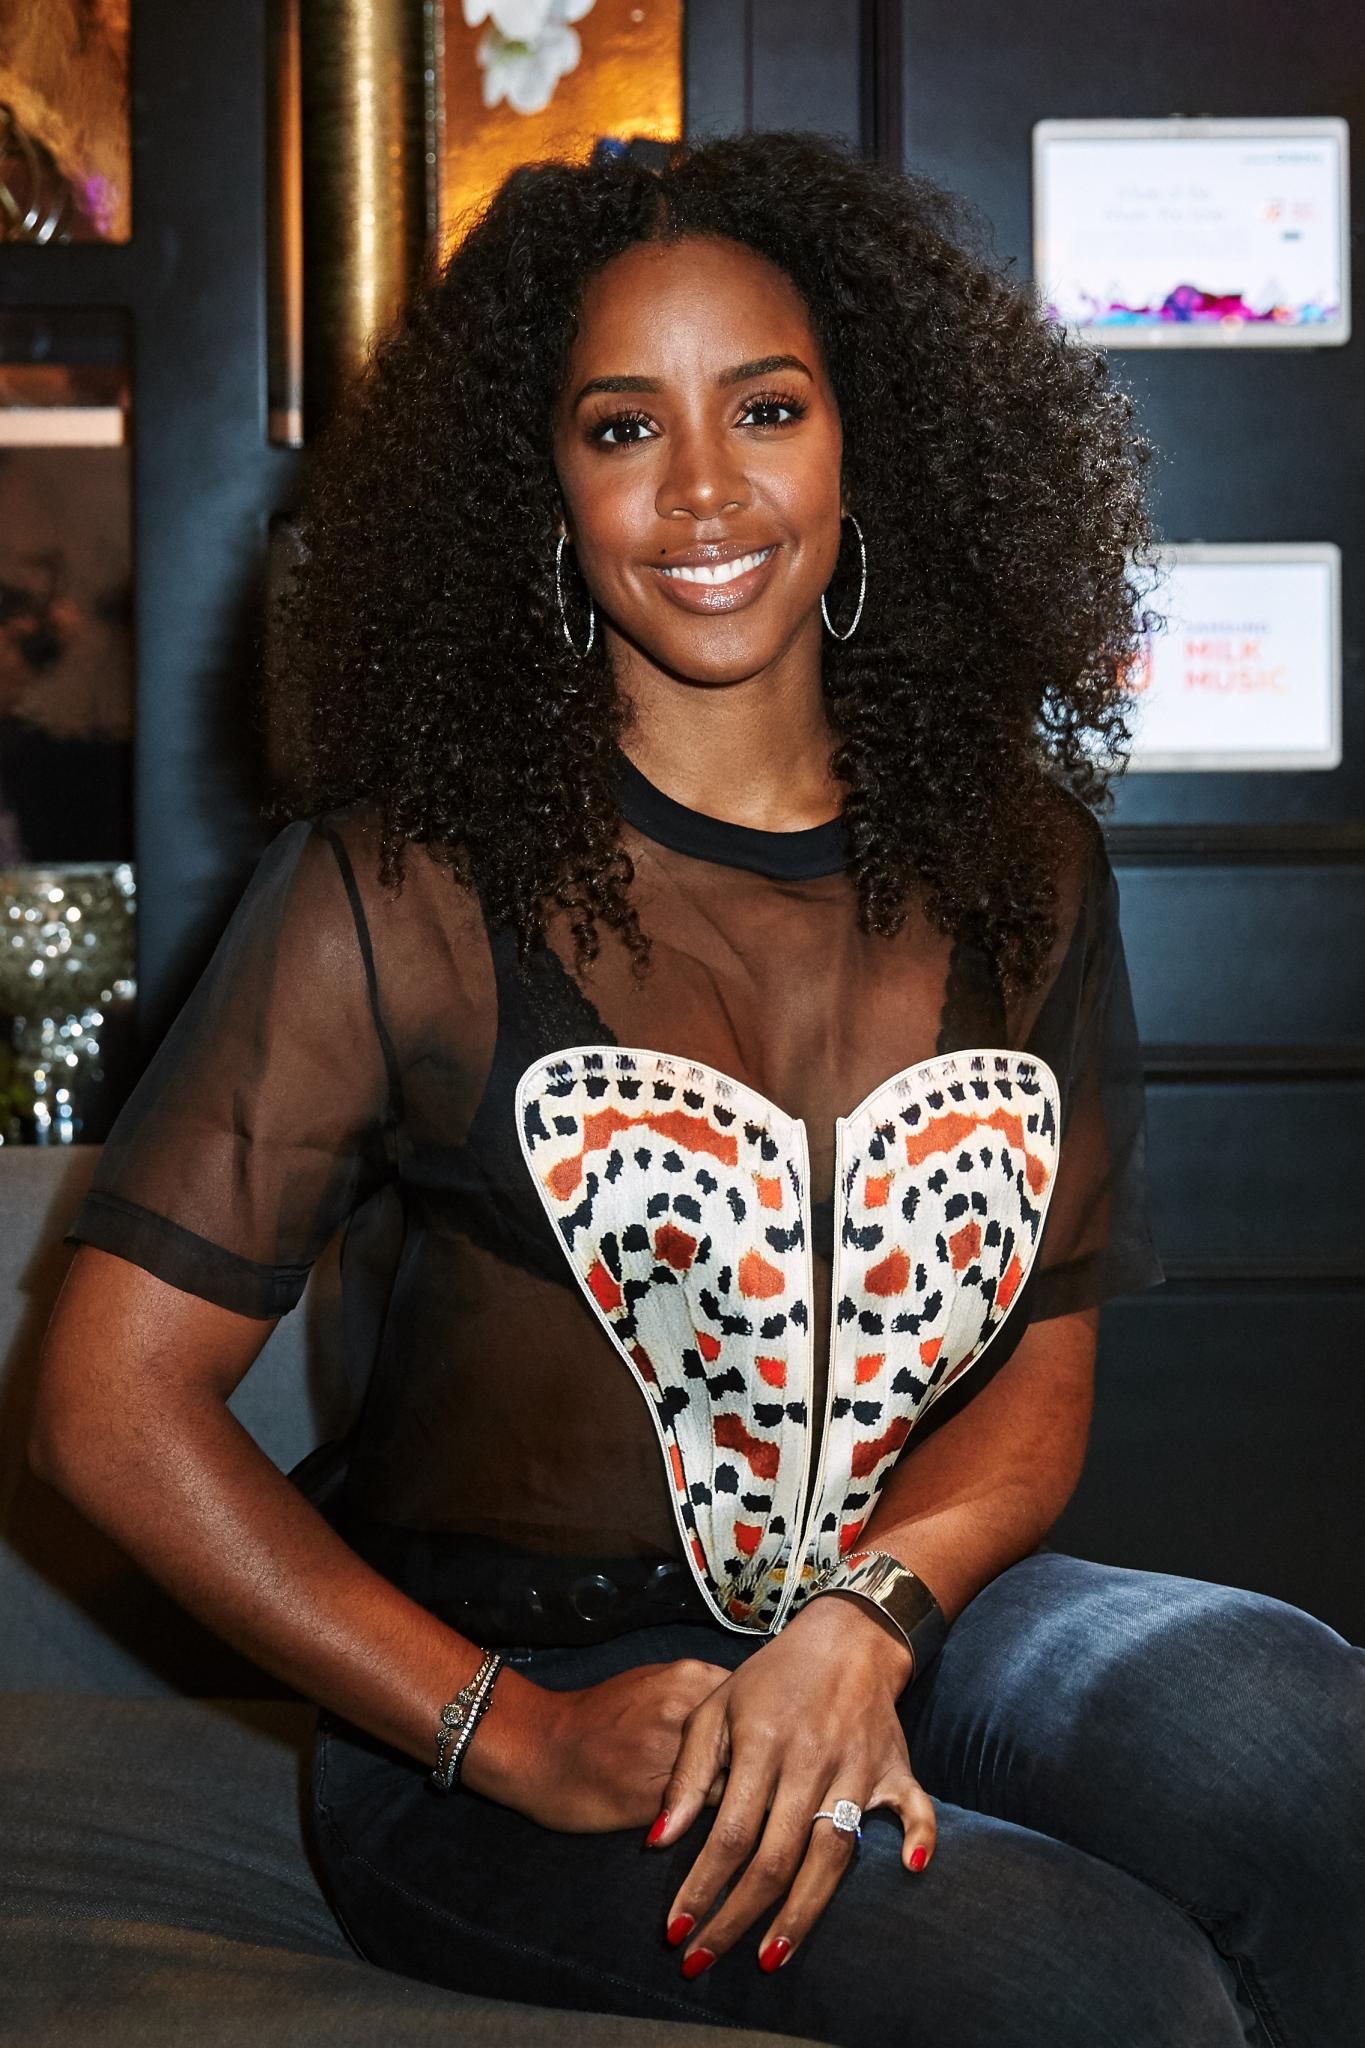 Kelly Rowland Jokes About Starting a 'Michelle Obama for President' Campaign